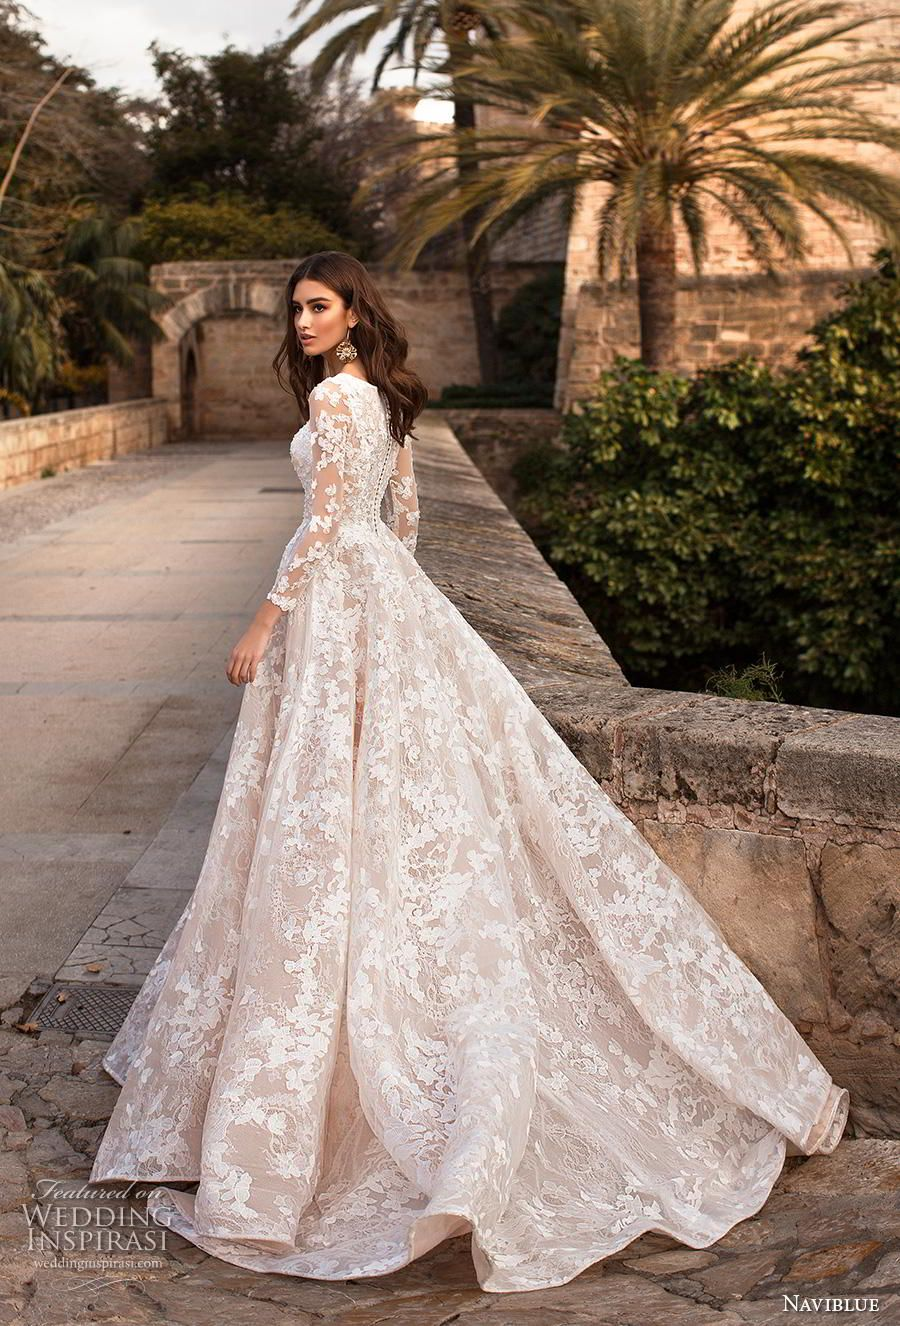 naviblue 2019 bridal long sleeves bateau neck full embellishment elegant  modest a line wedding dress covered lace back chapel train (15) bv --  Naviblue 2019 ... 8c9dce2a9337